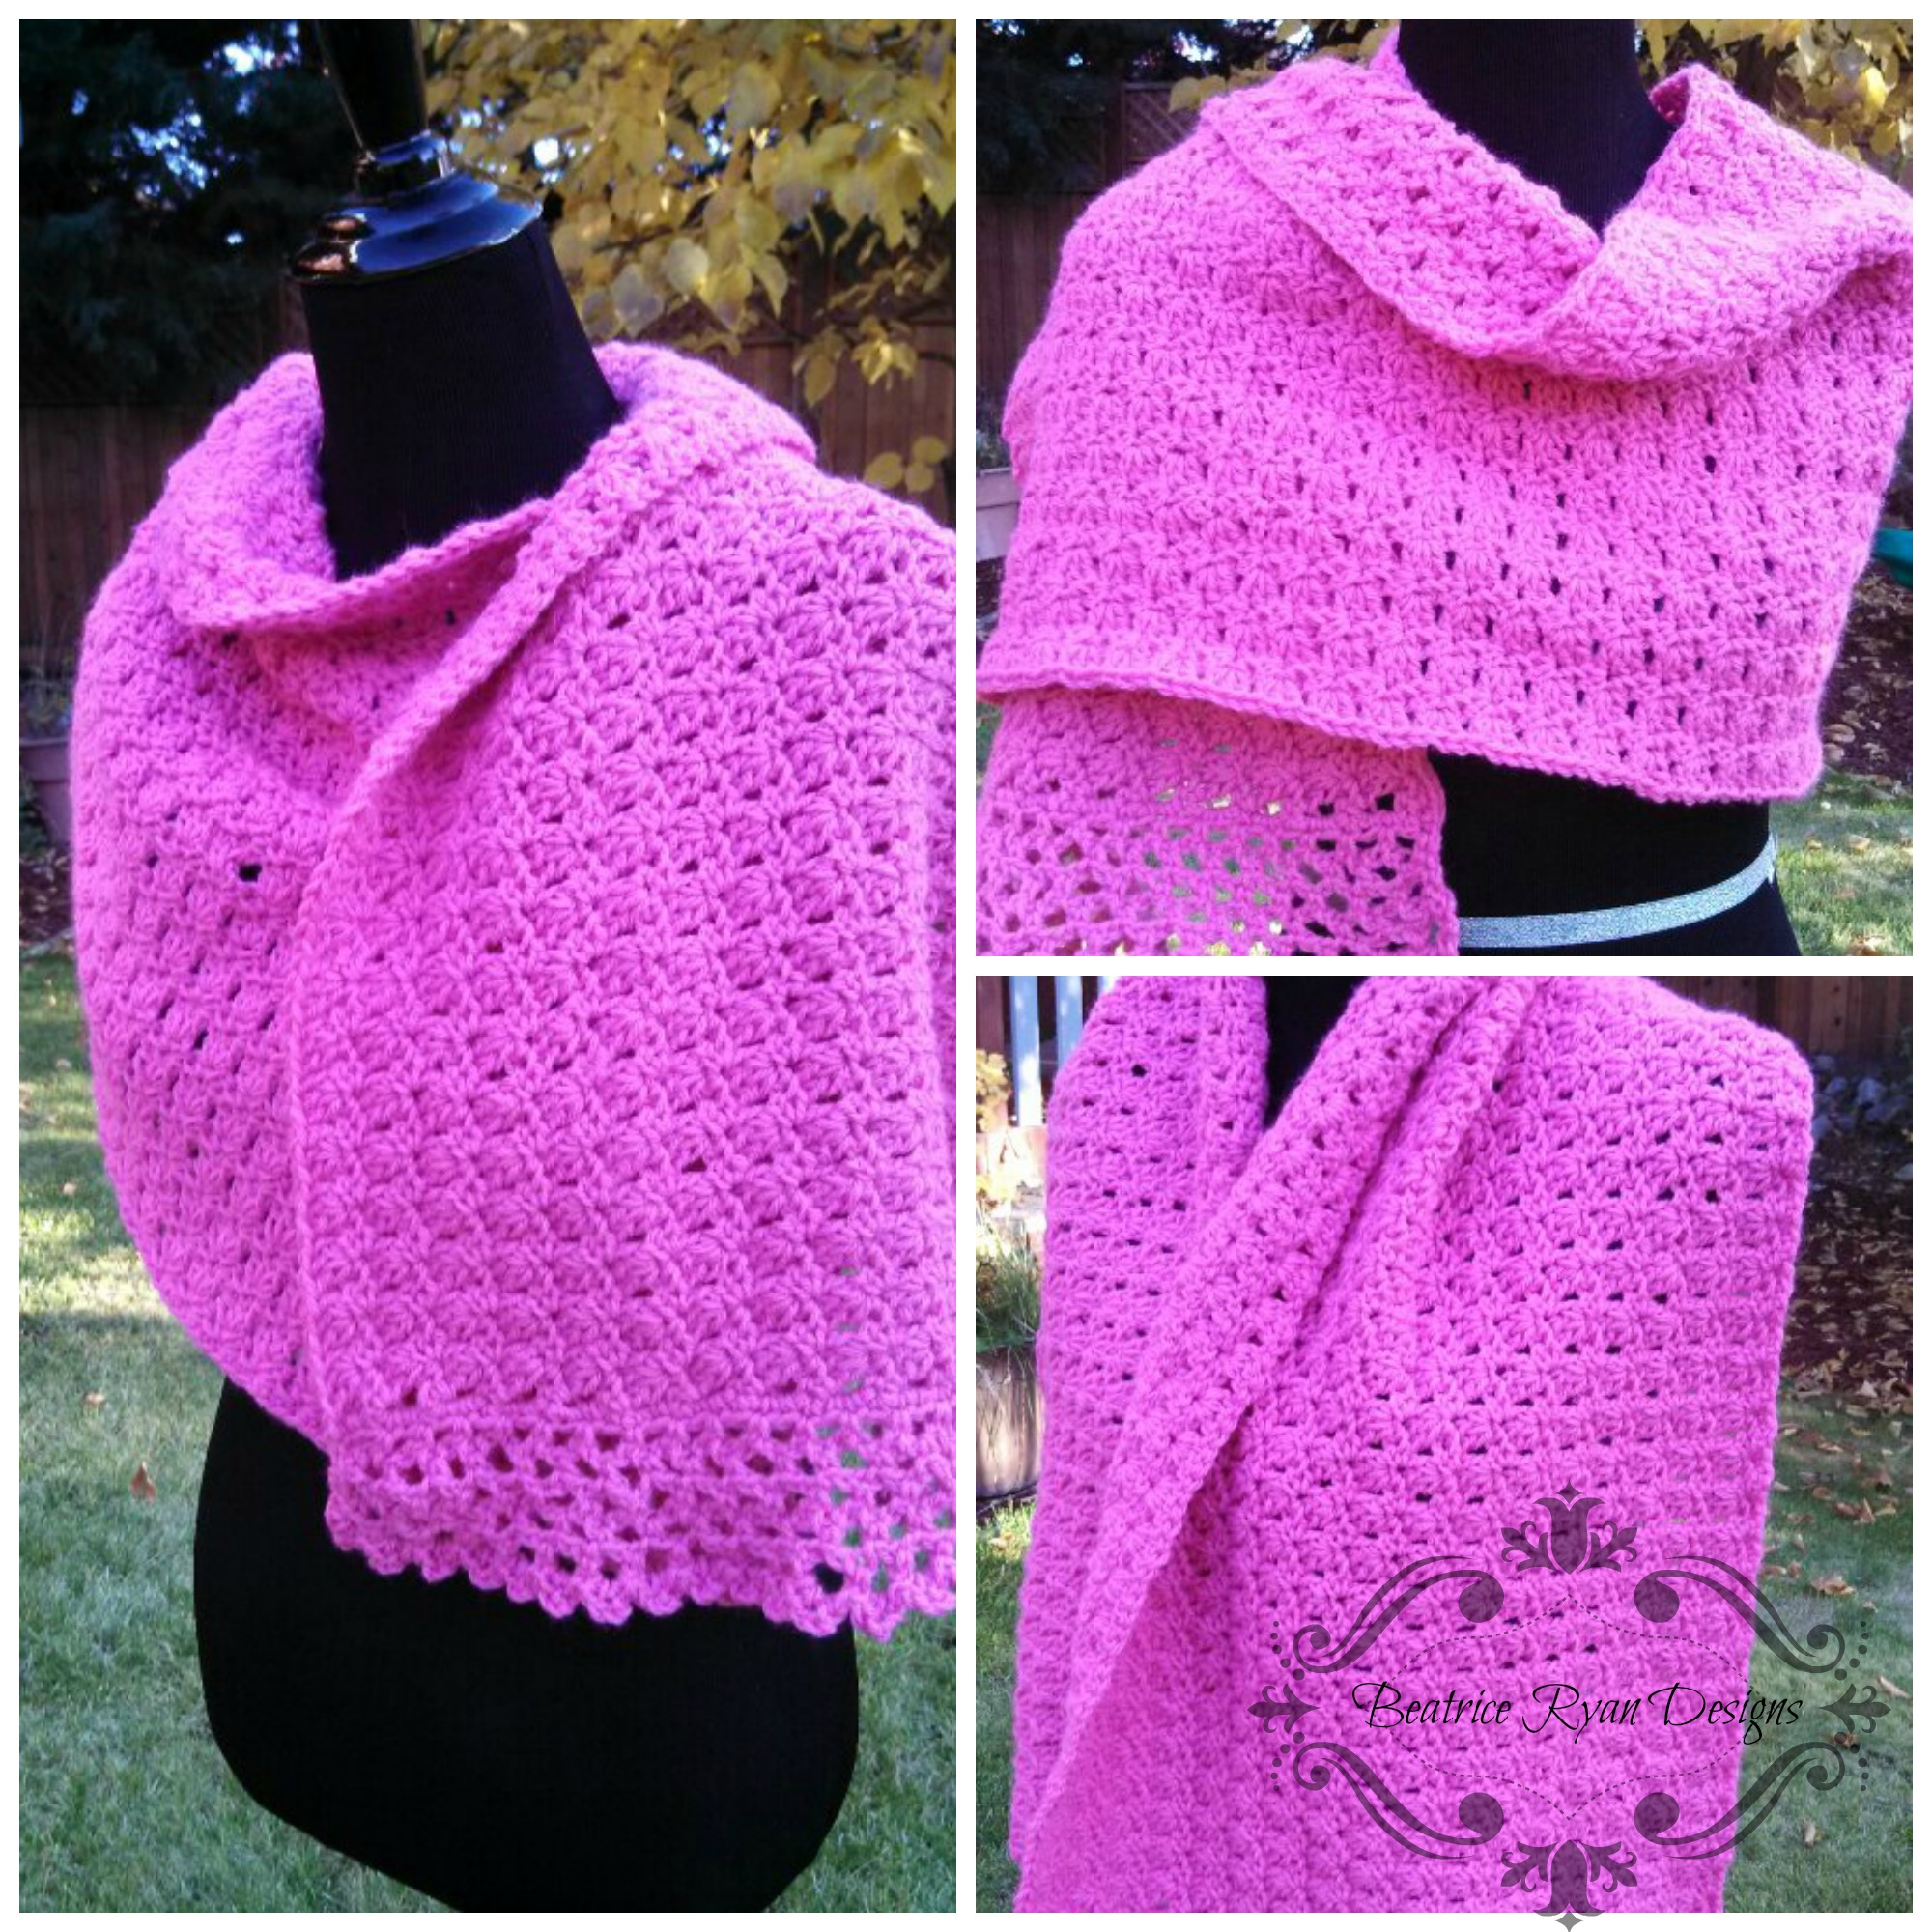 Amazing grace prayer shawl free crochet pattern click bankloansurffo Image collections